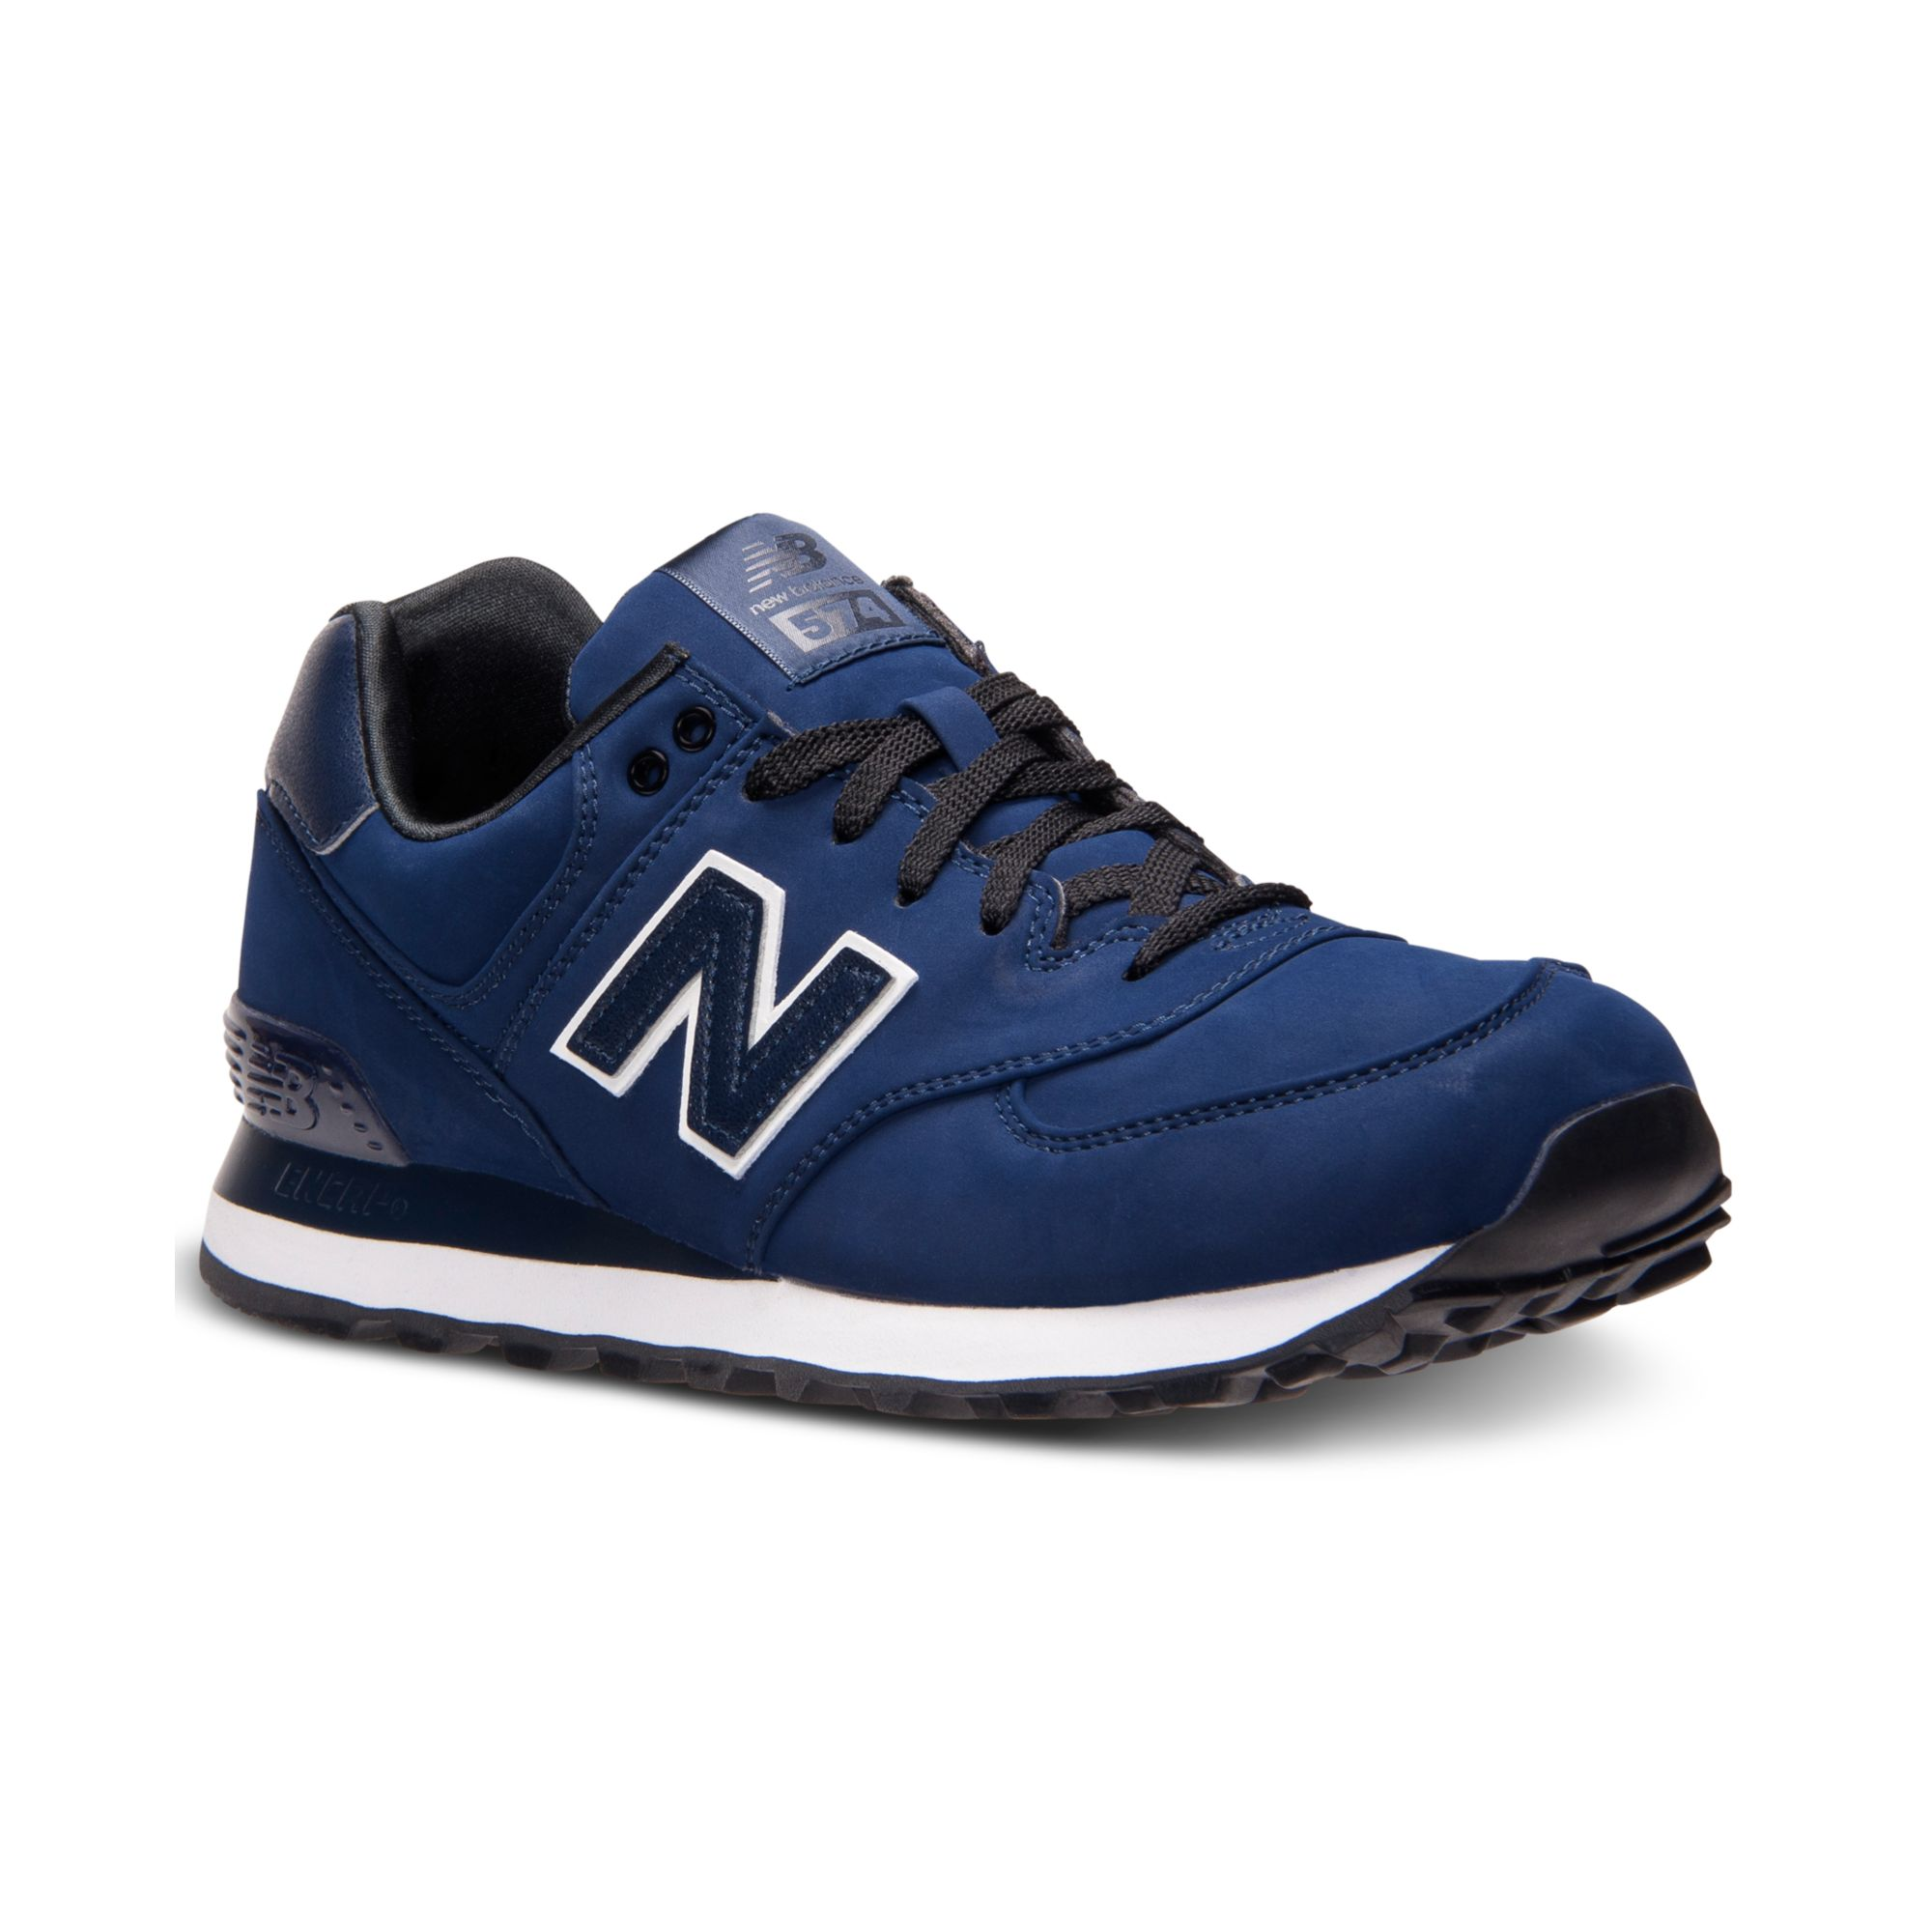 Mens Old Navy Shoes